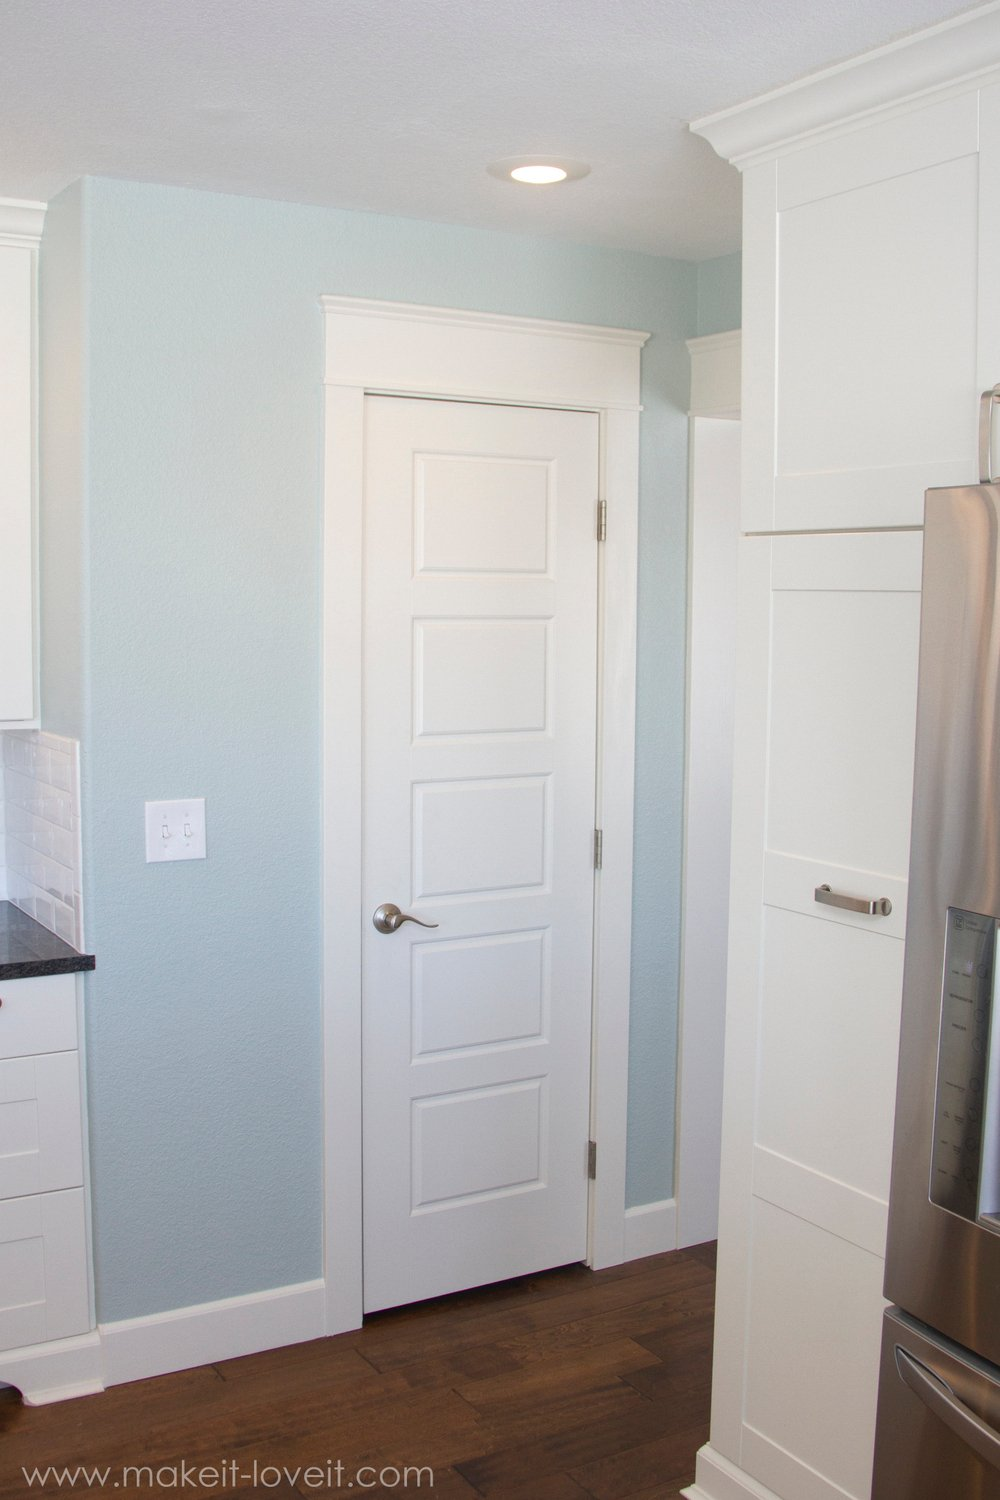 How to install a prehung interior door this old house - Installing prehung interior doors ...